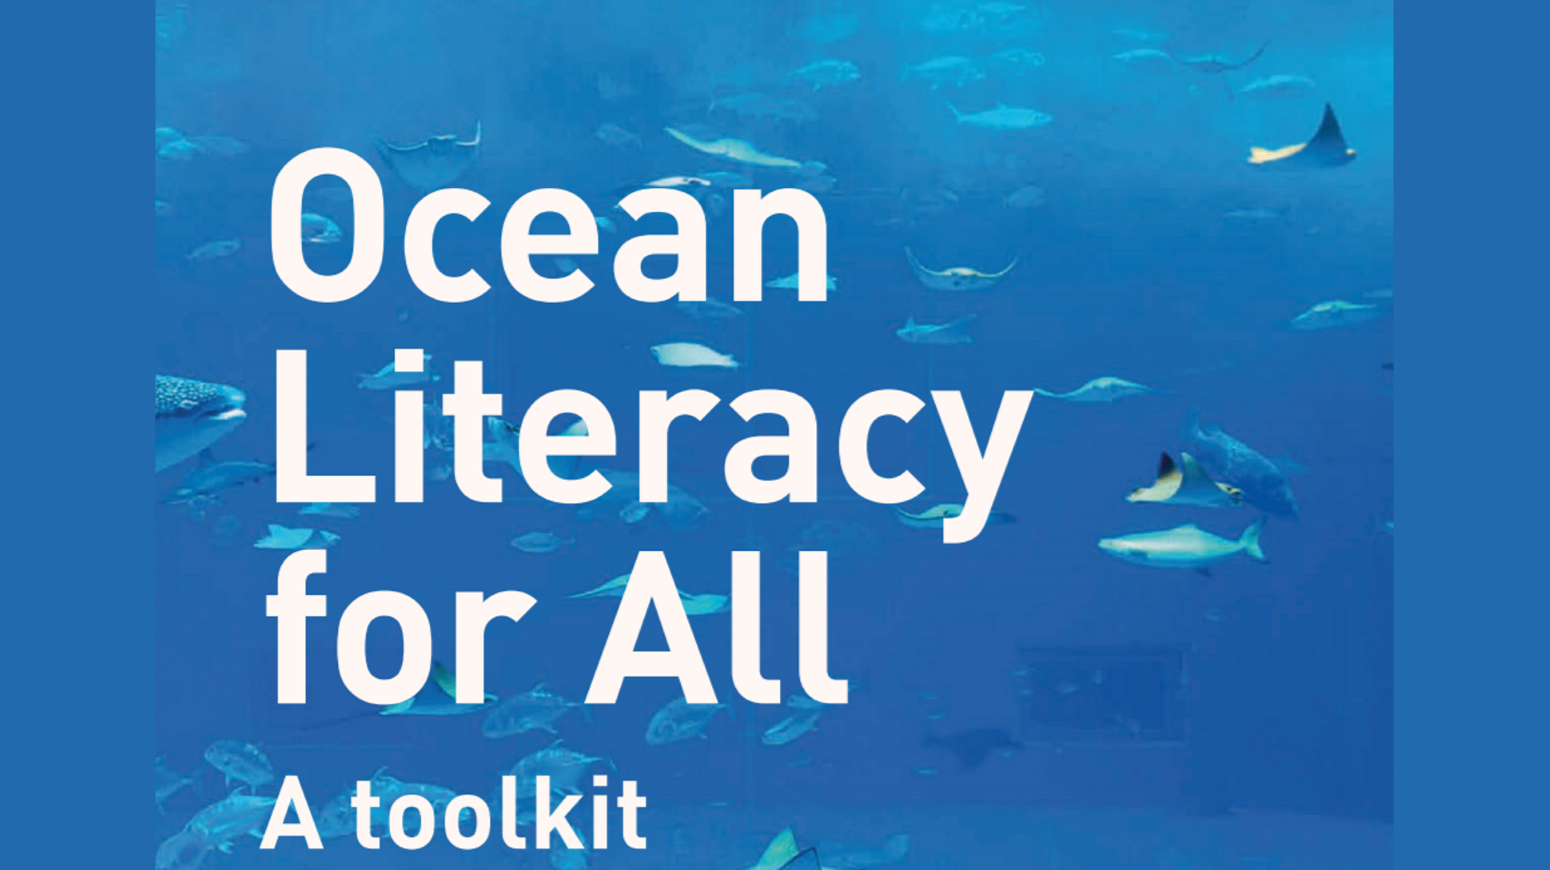 Ocean Literacy for all: a toolkit